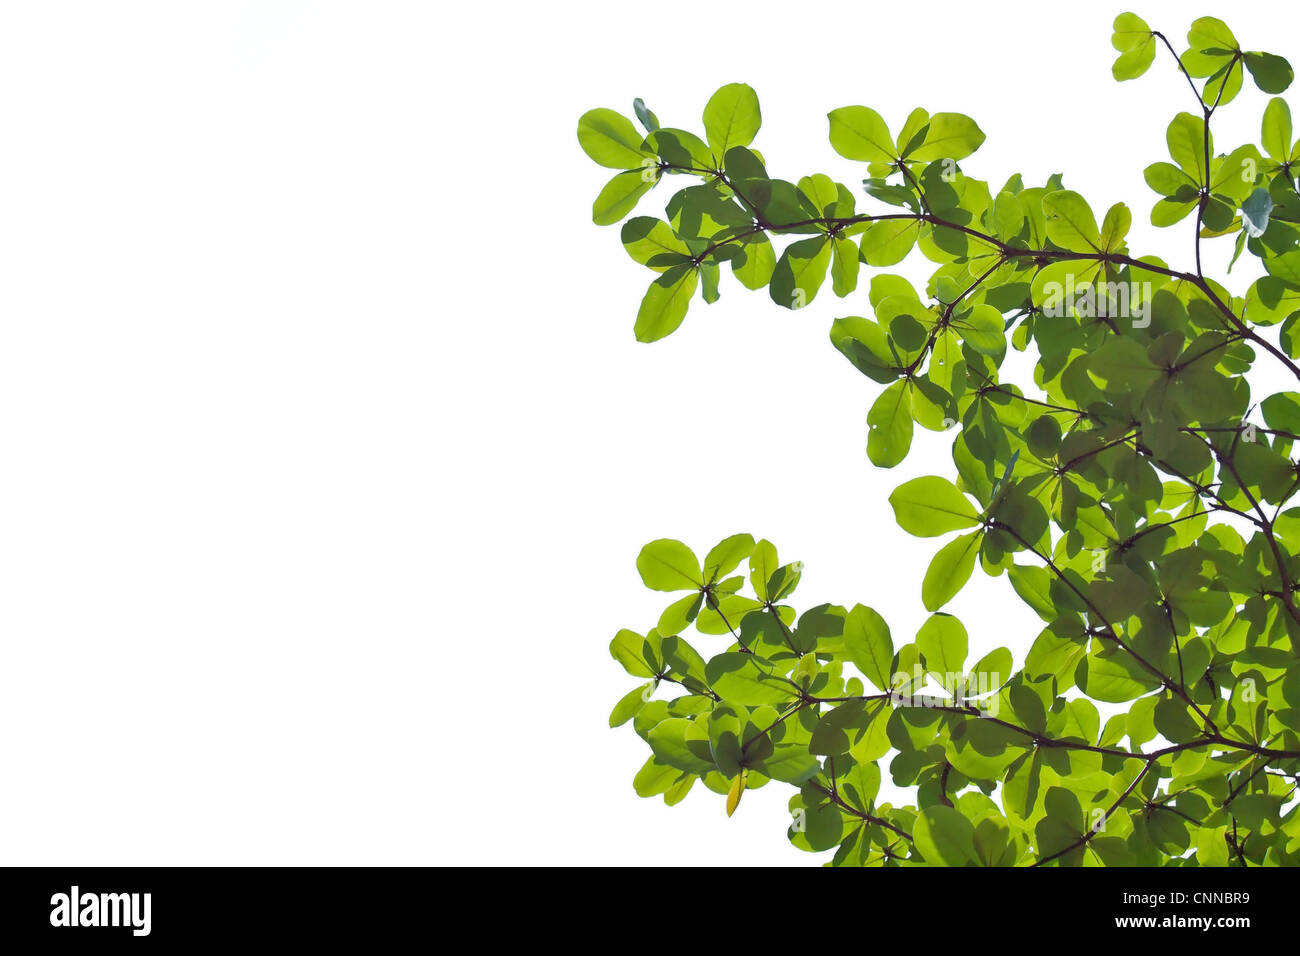 Green leafs isolate on white - Stock Image